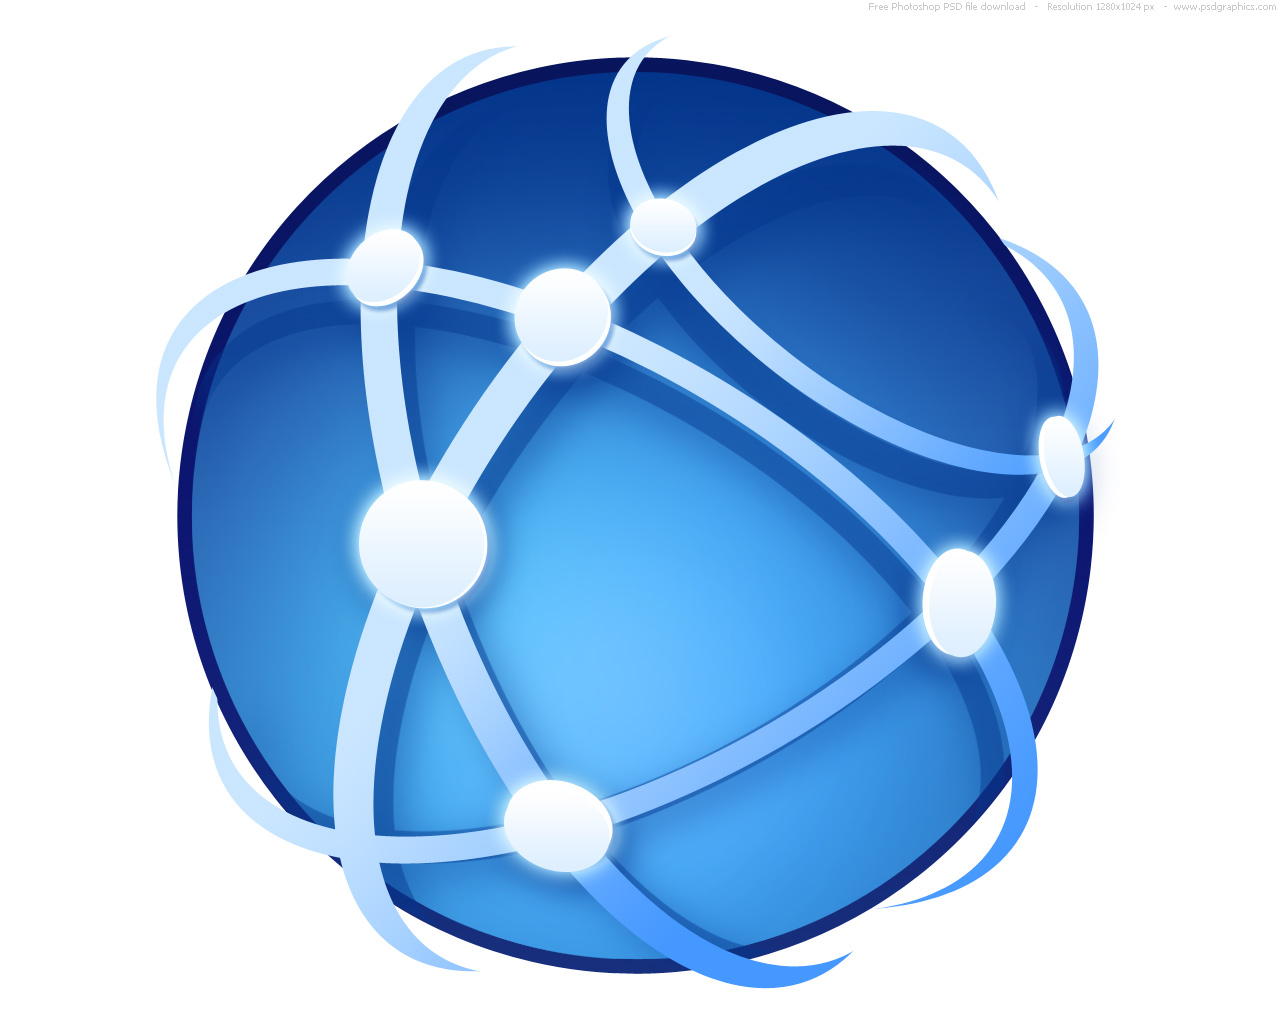 9 Network Technology Icon Images